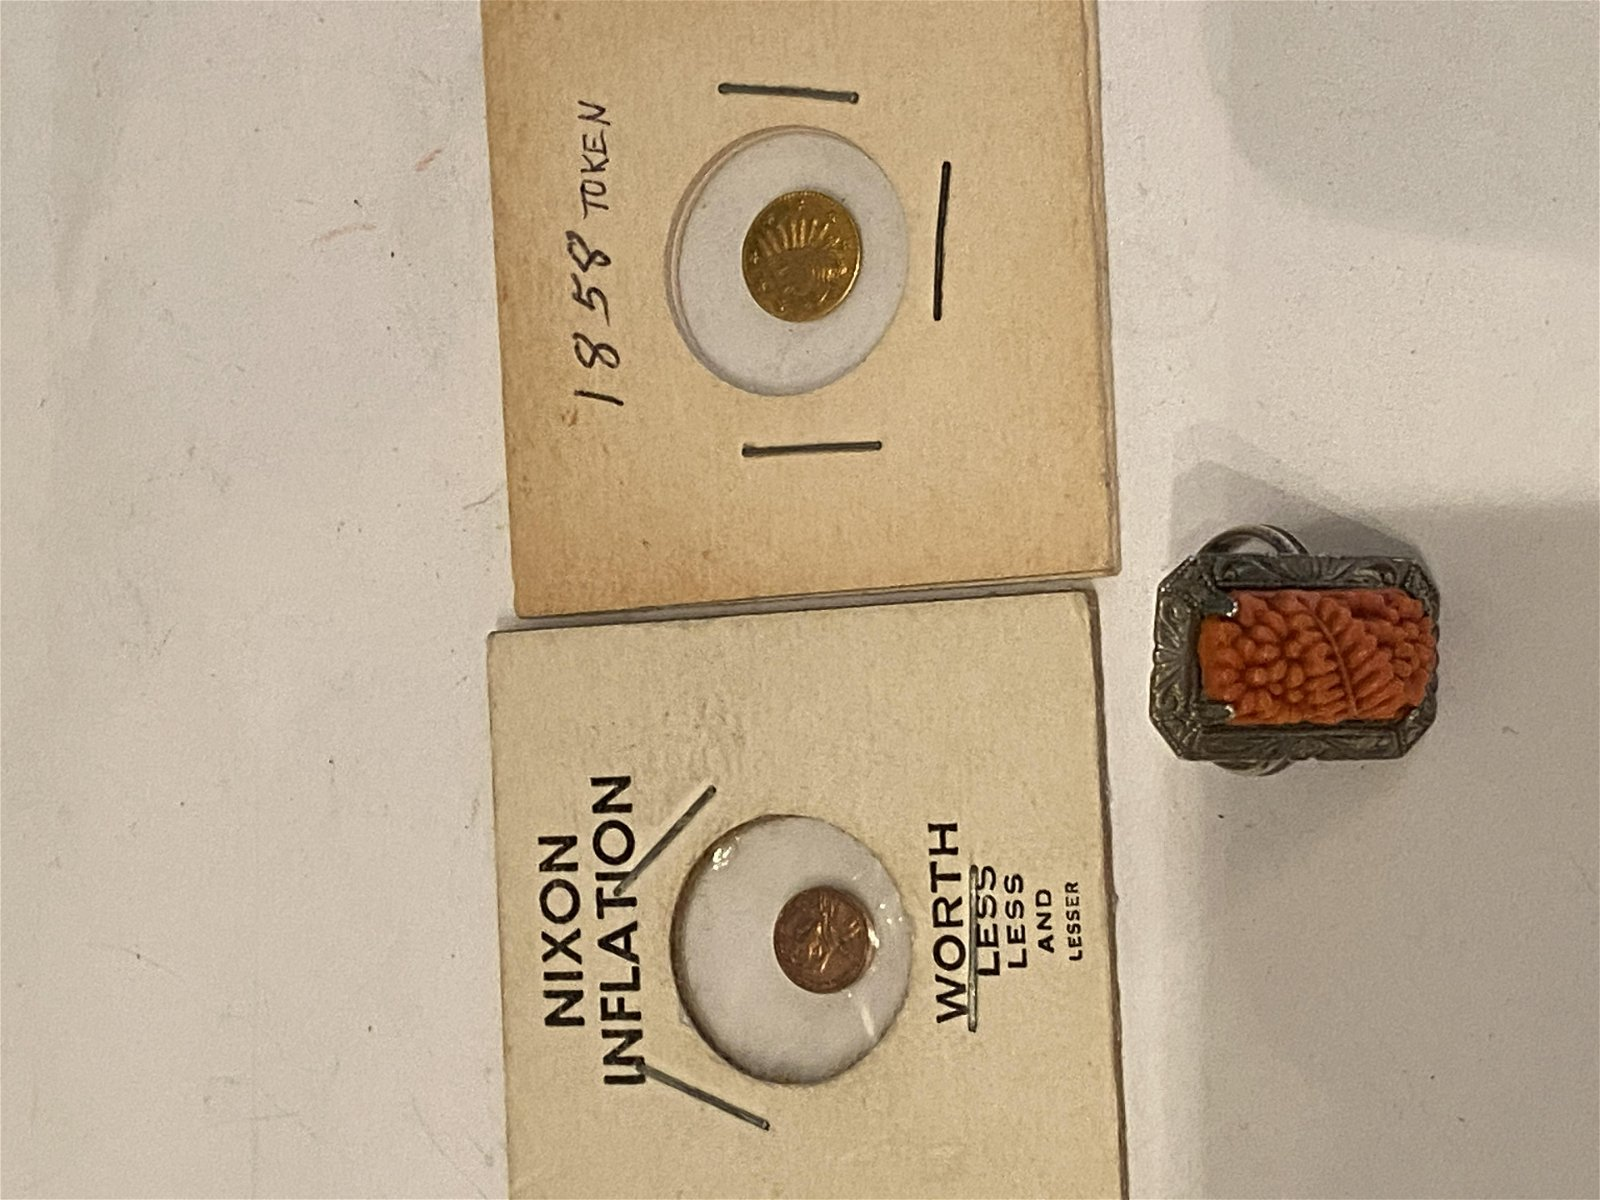 LOT OF (2) COINS - 1 GOLD & CORAL SILVER ART DECO RING